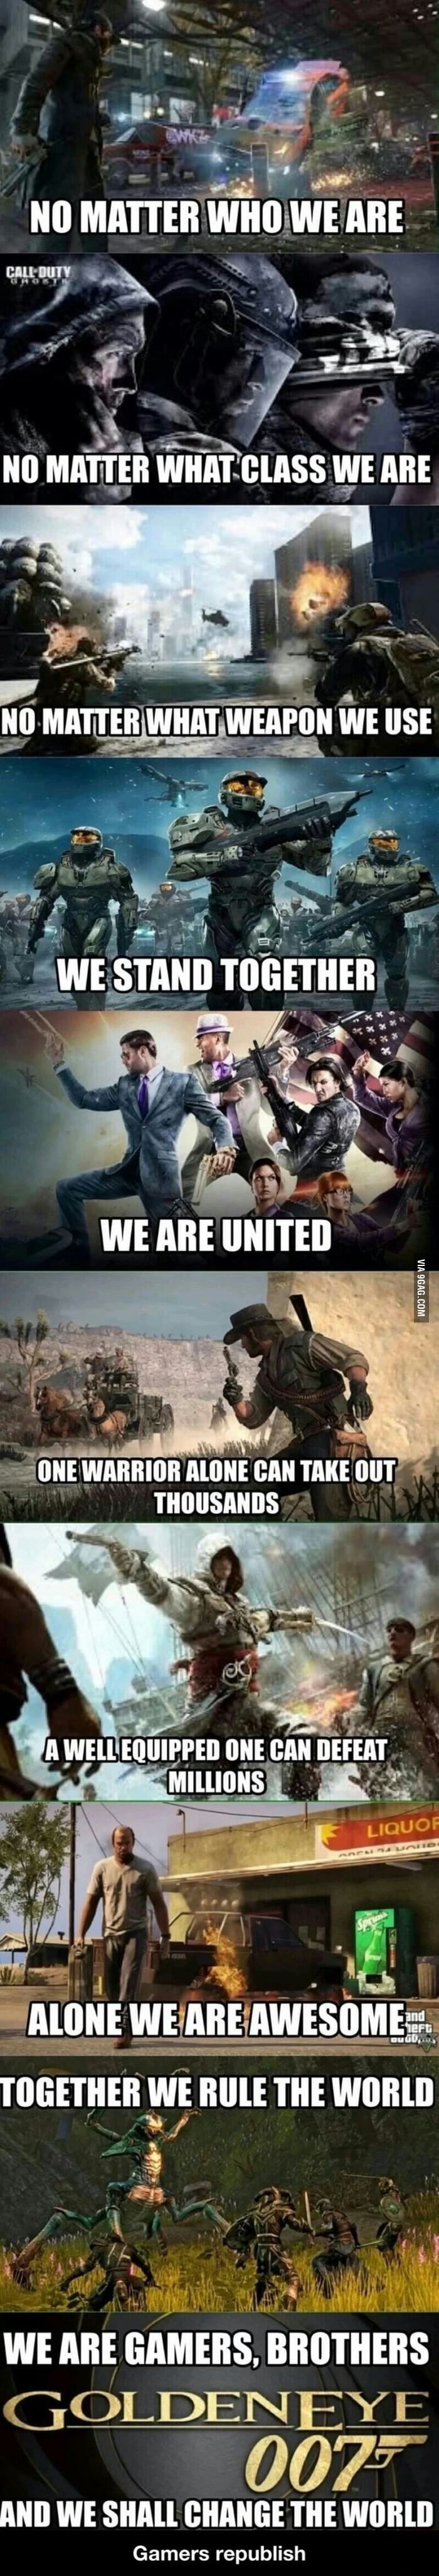 Just a reminder that we are united